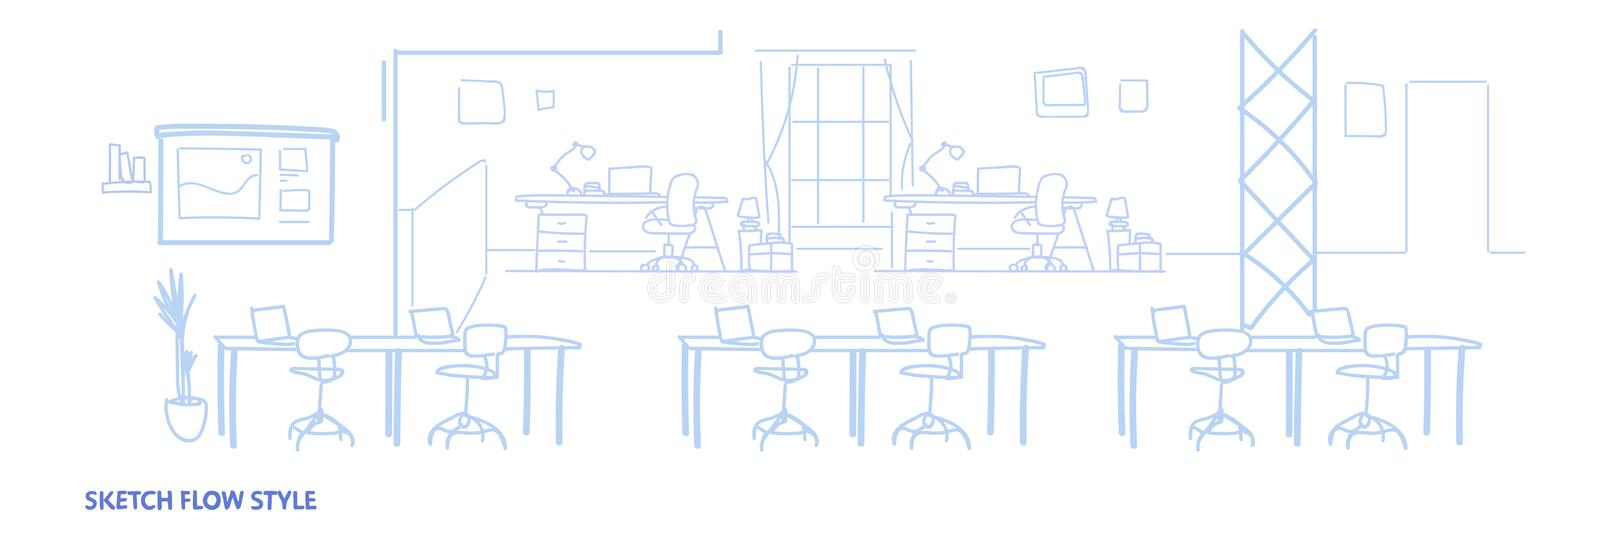 Empty co-working office interior modern coworking open space center creative workplace environment horizontal banner stock illustration